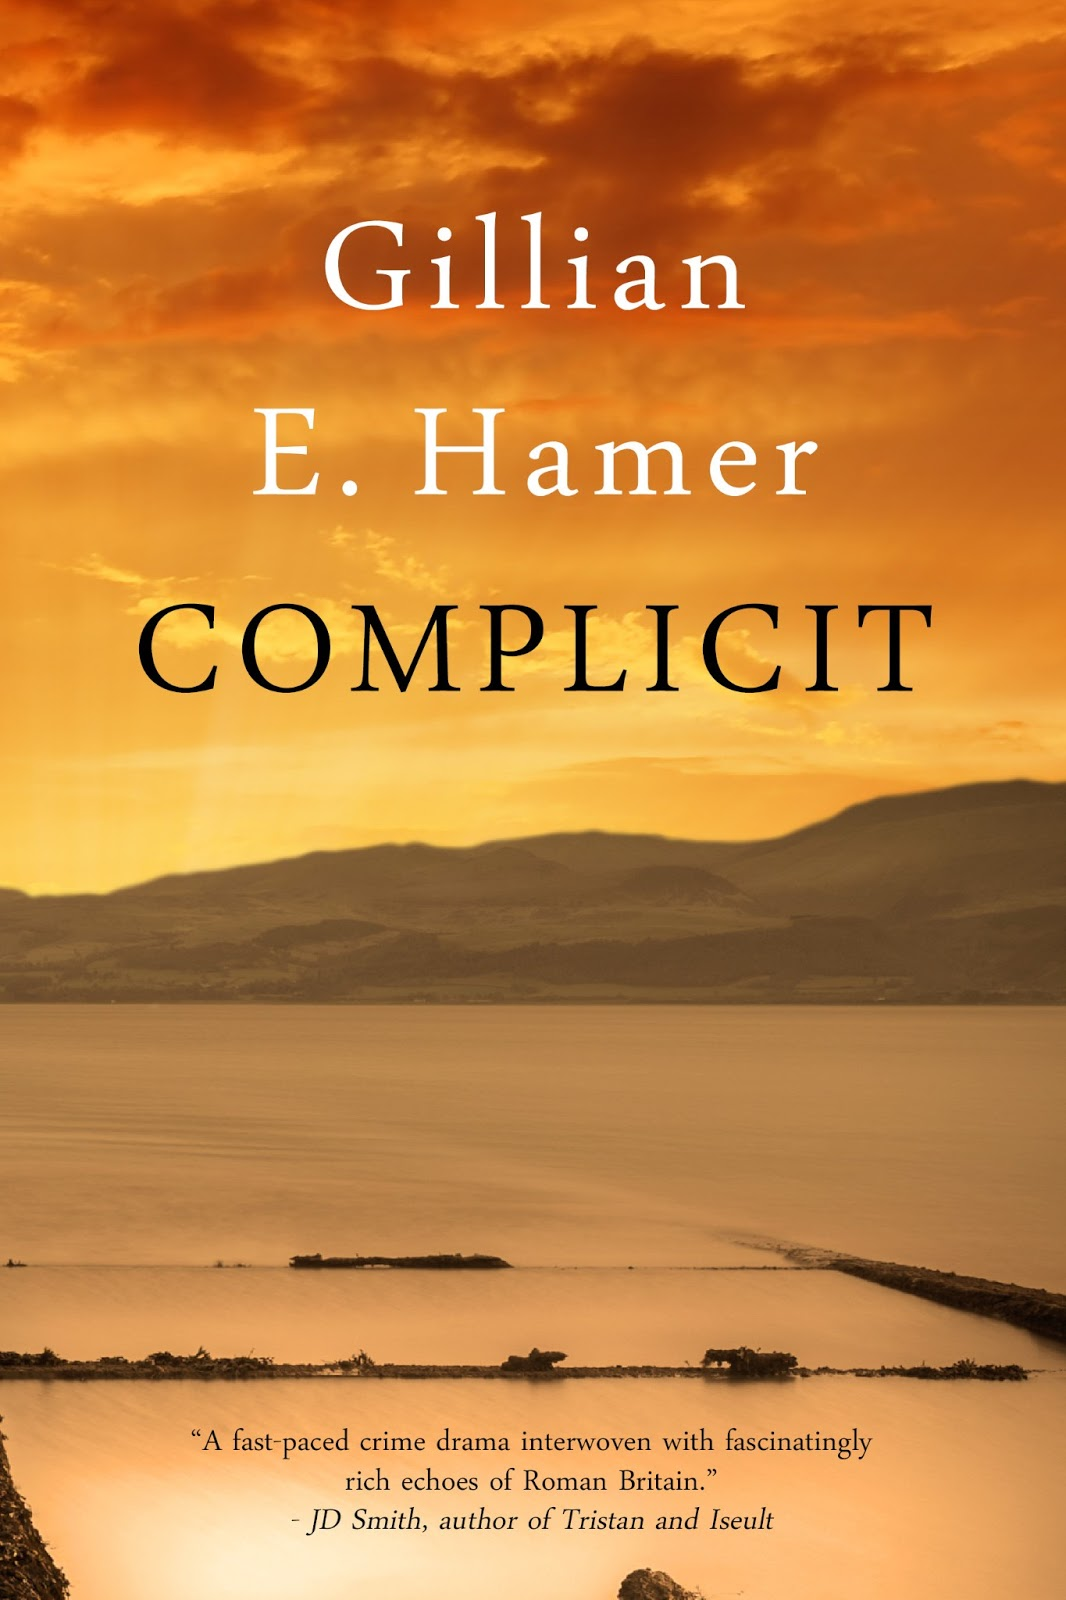 G E Hamer; 1 Edition (19 May 2013)